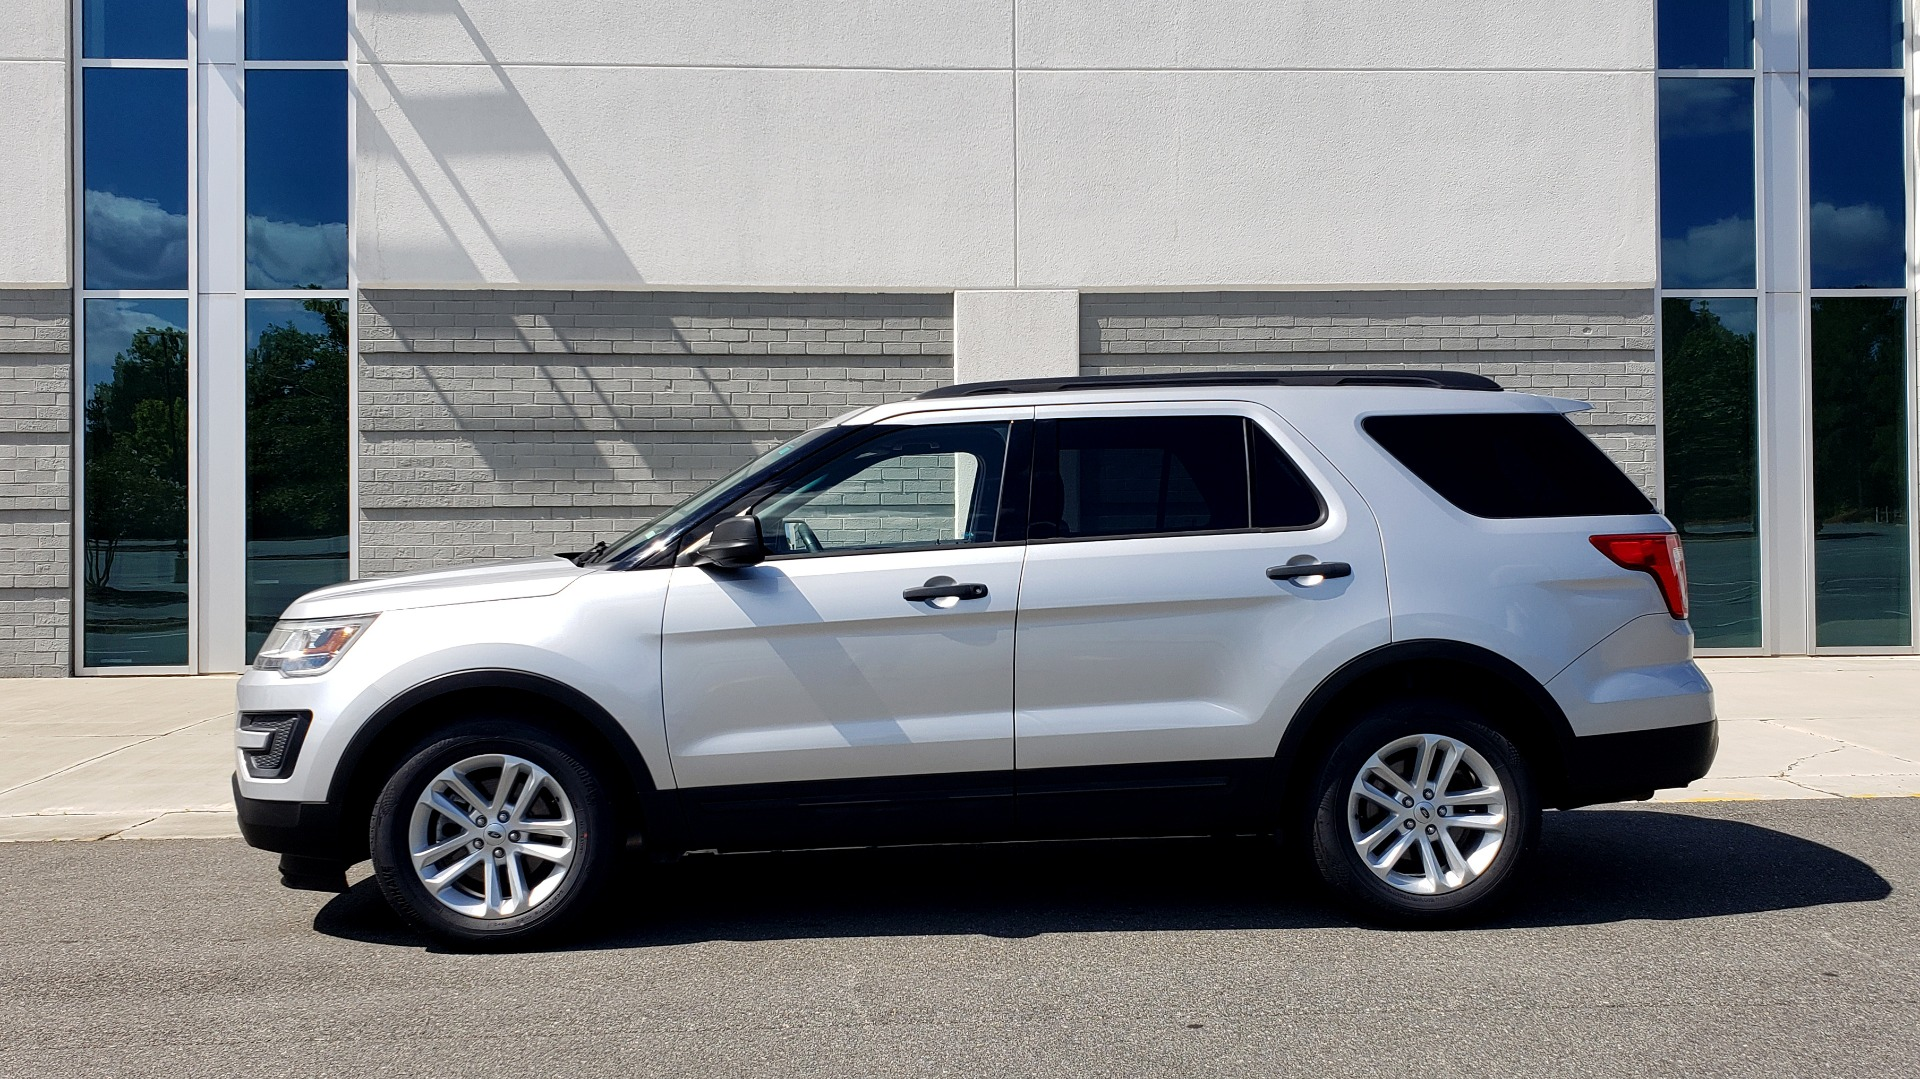 Used 2017 Ford EXPLORER 3.5L V6 / 6-SPD AUTO / BLIND SPOT MONITOR / 3-ROW / SYNC / REARVIEW for sale $22,995 at Formula Imports in Charlotte NC 28227 5